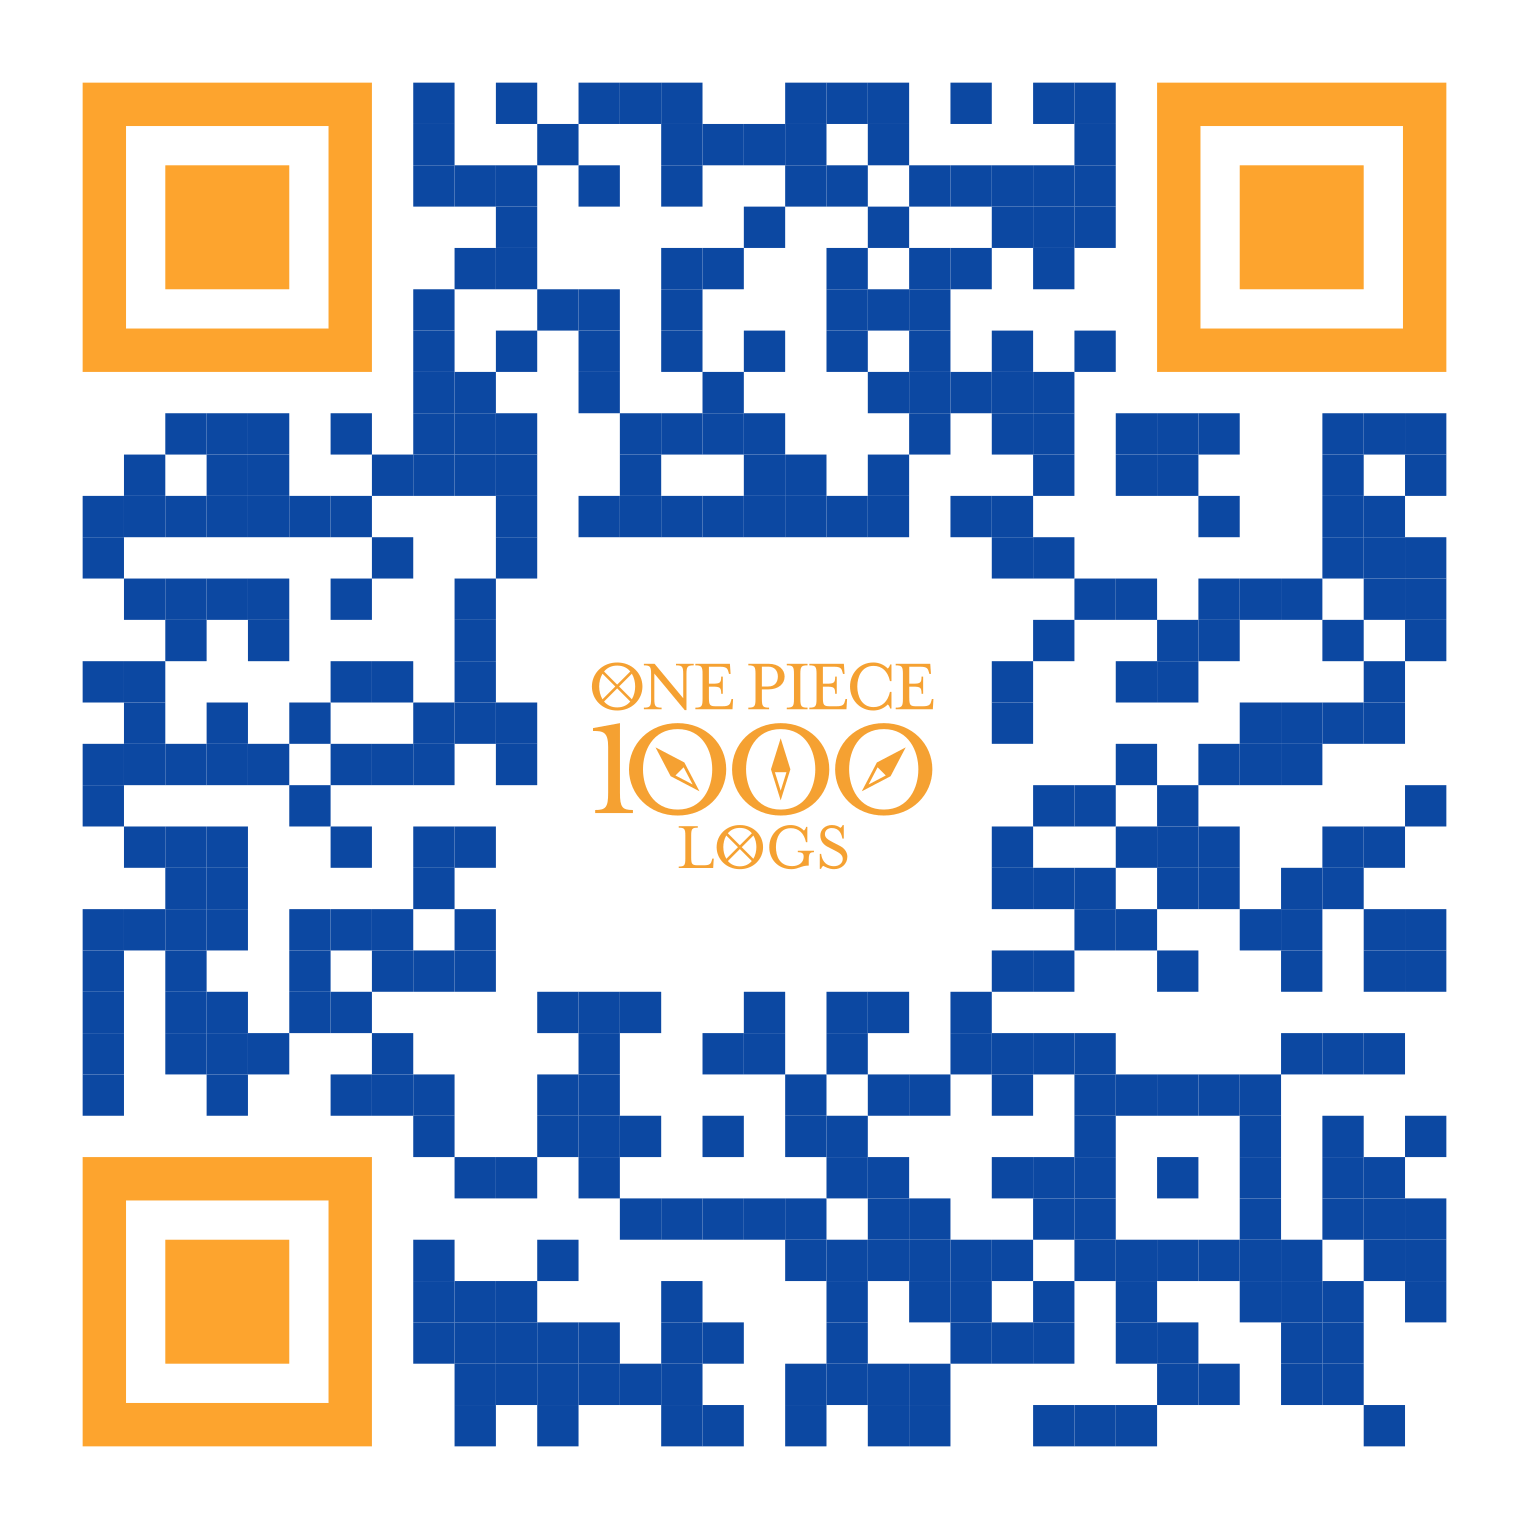 https://www.cosmocover.com/wp-content/uploads/2021/10/QR-code.png